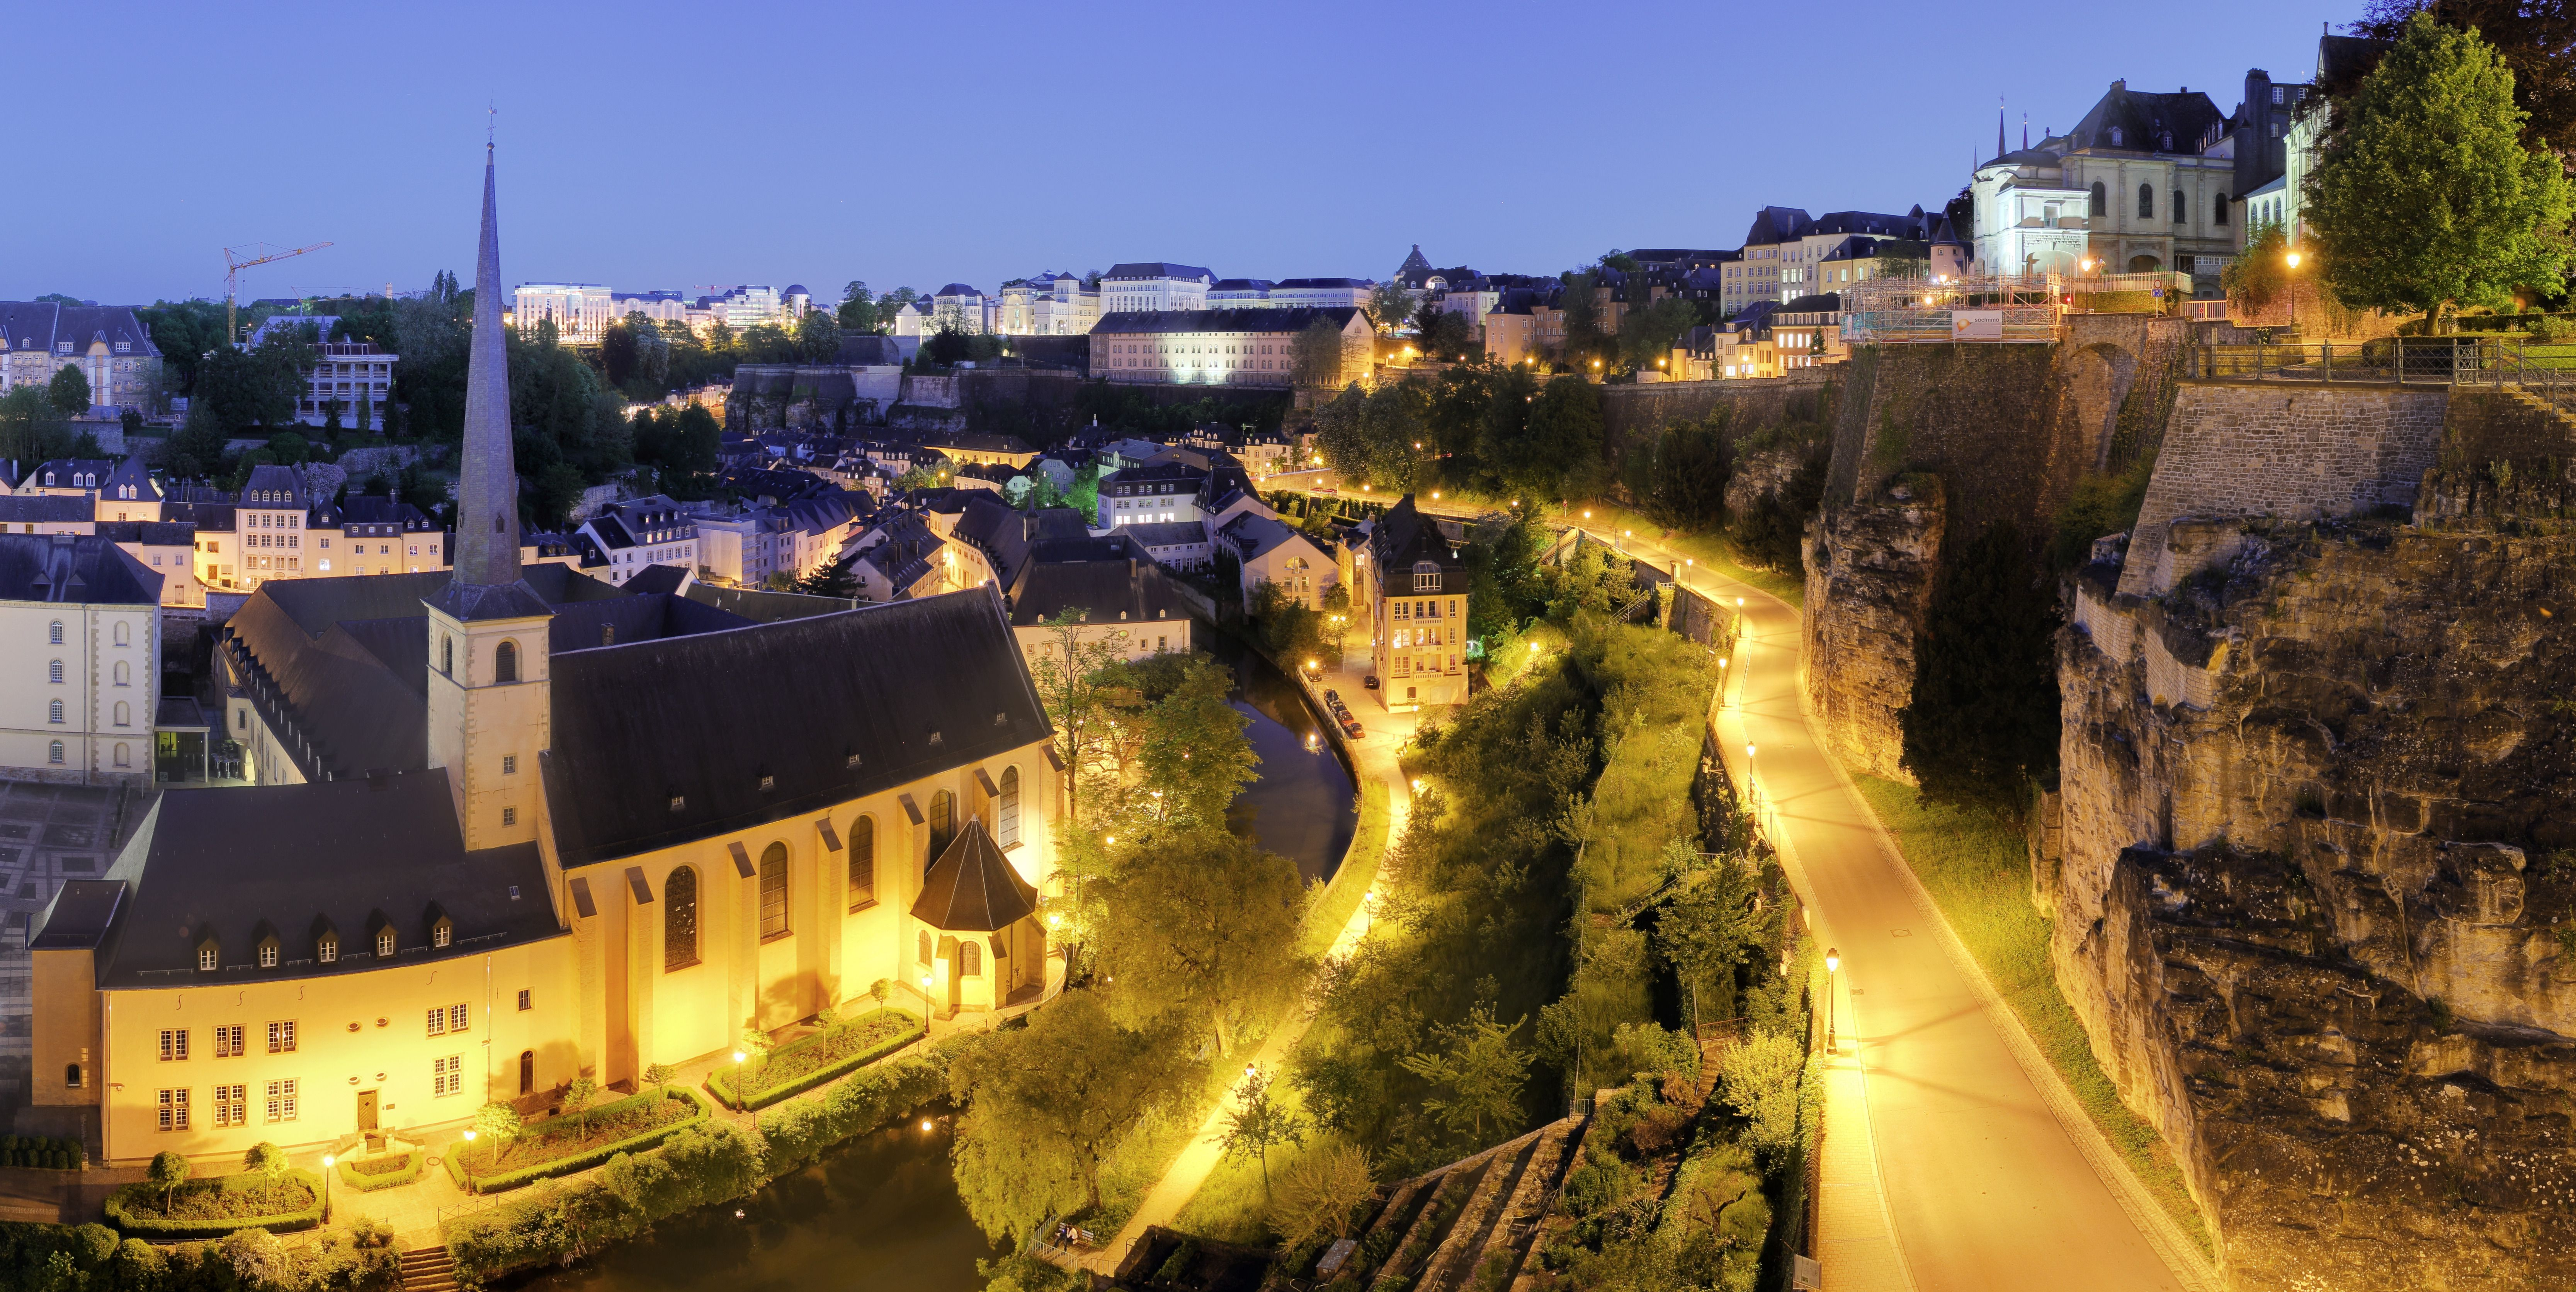 The capital of Luxembourg is Luxembourg City. The picture